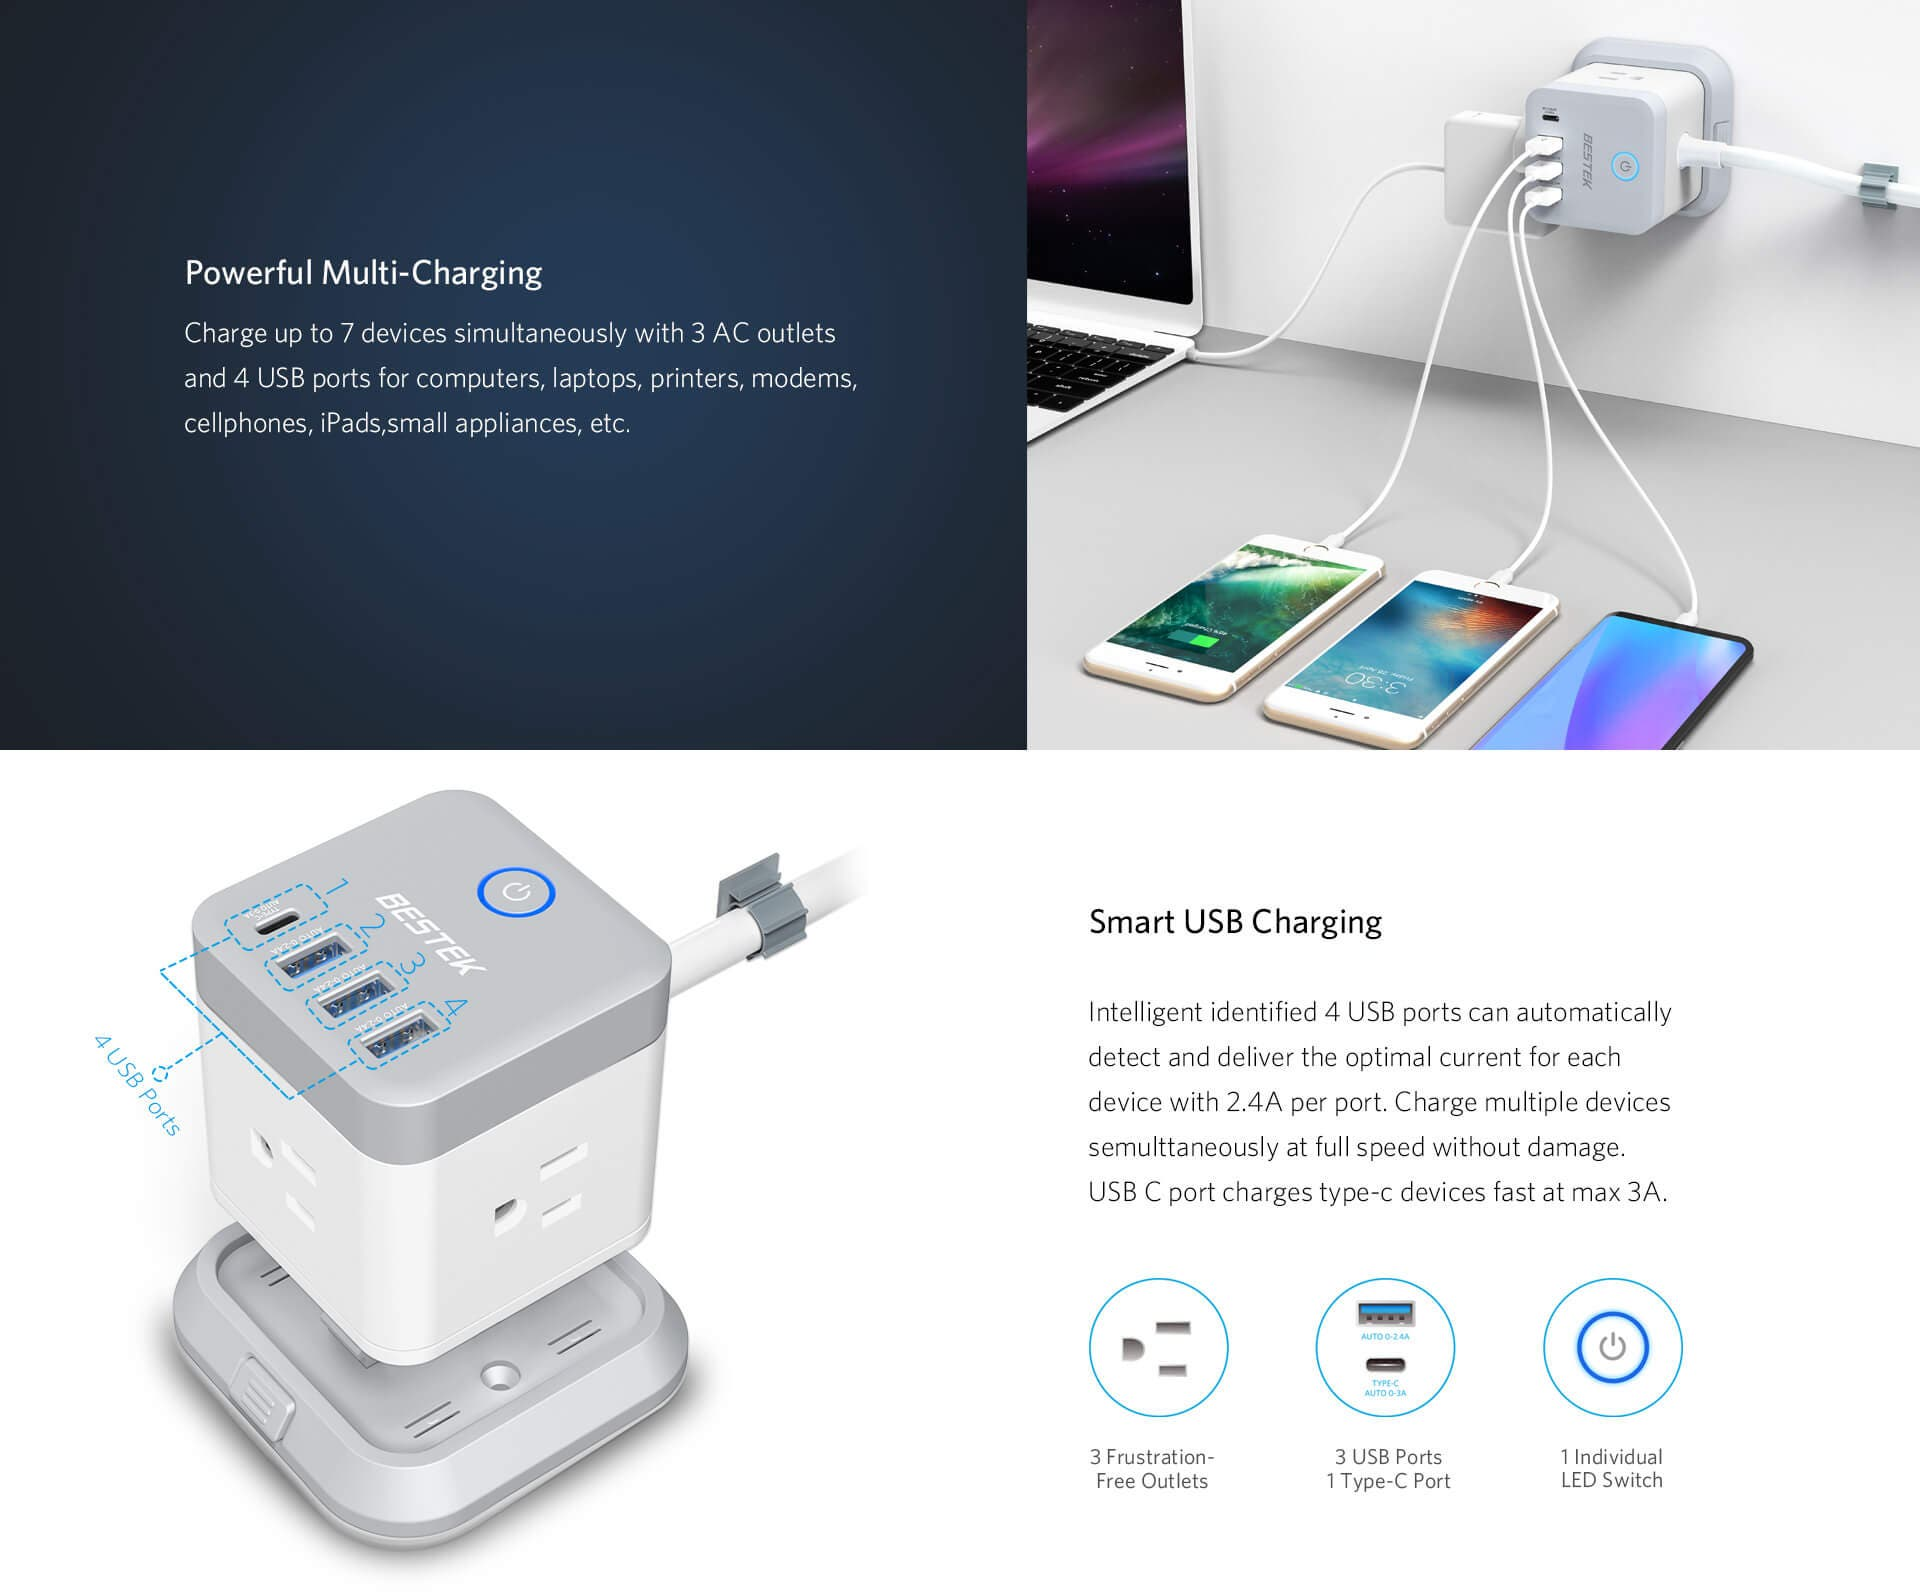 3-Outlet Vertical Cube